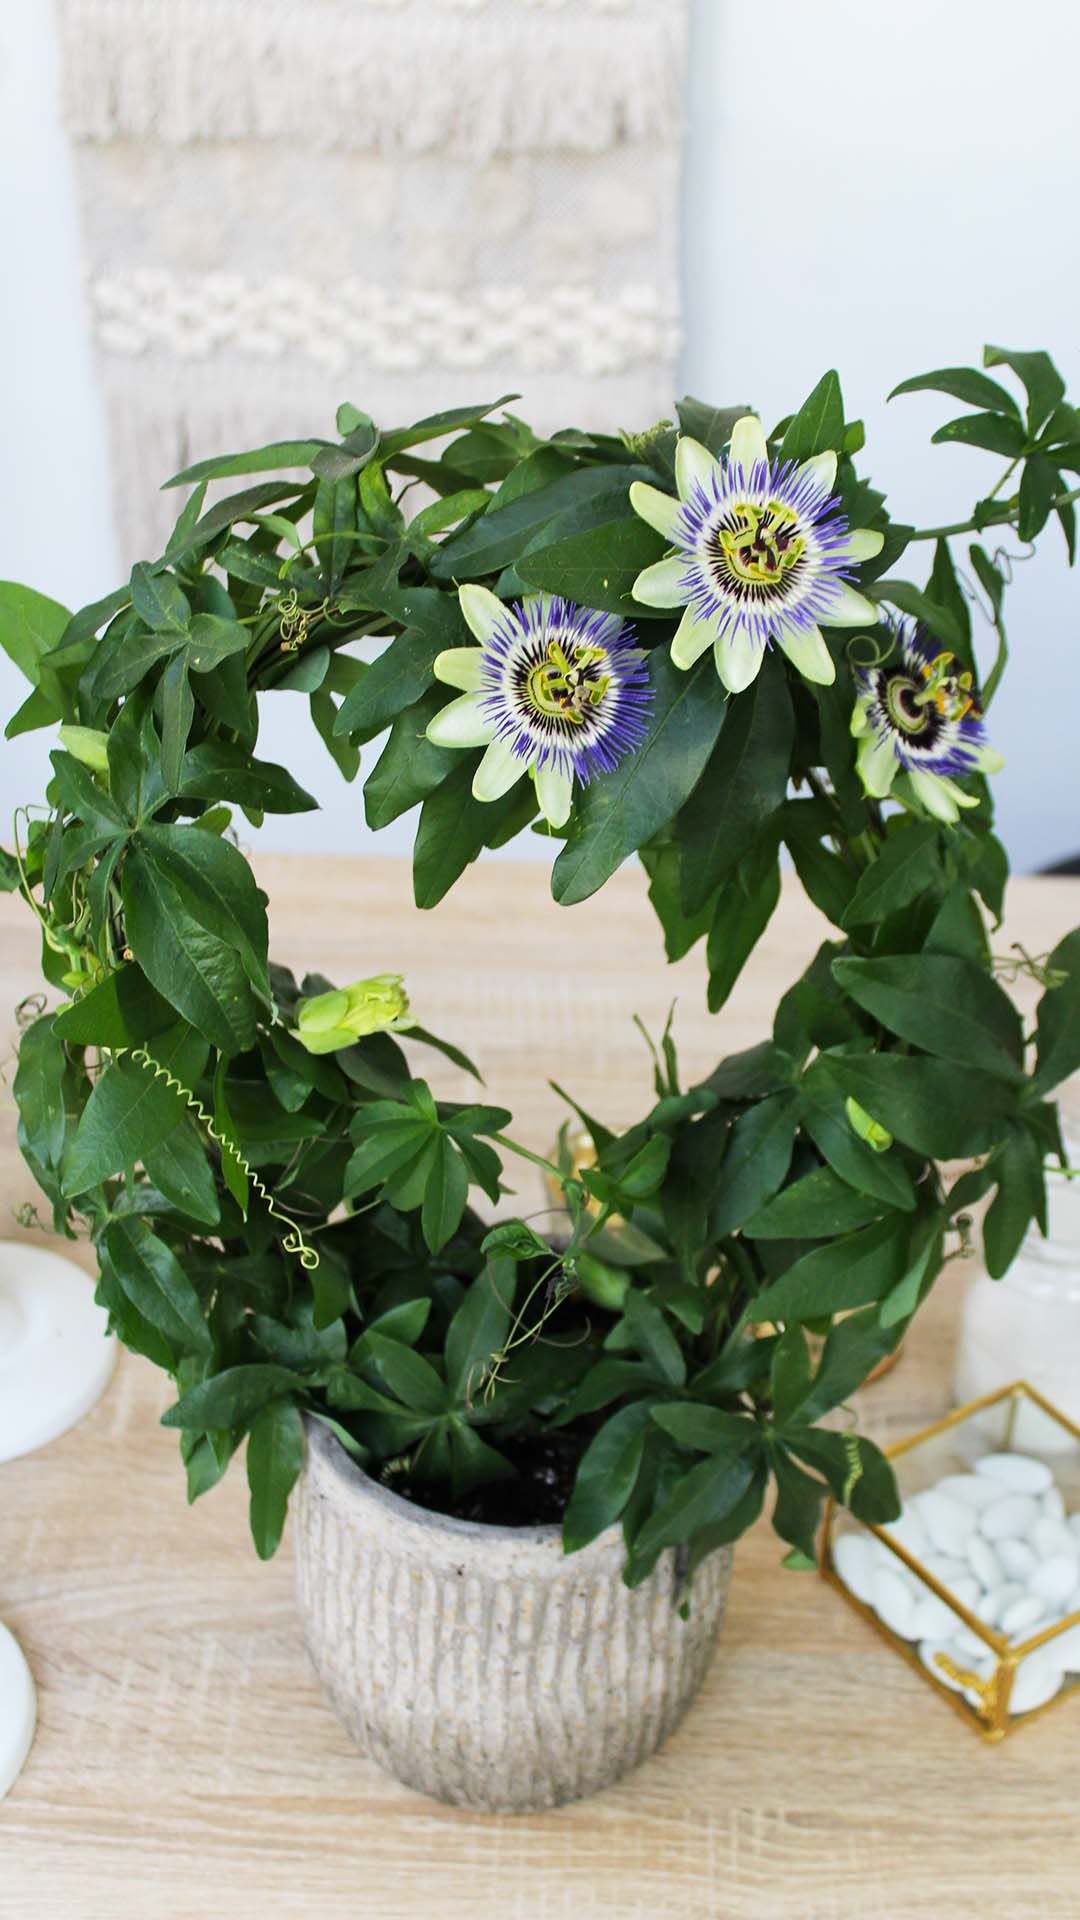 Passiflora Flowers Delivery In 2020 Passiflora Flower Delivery Plants